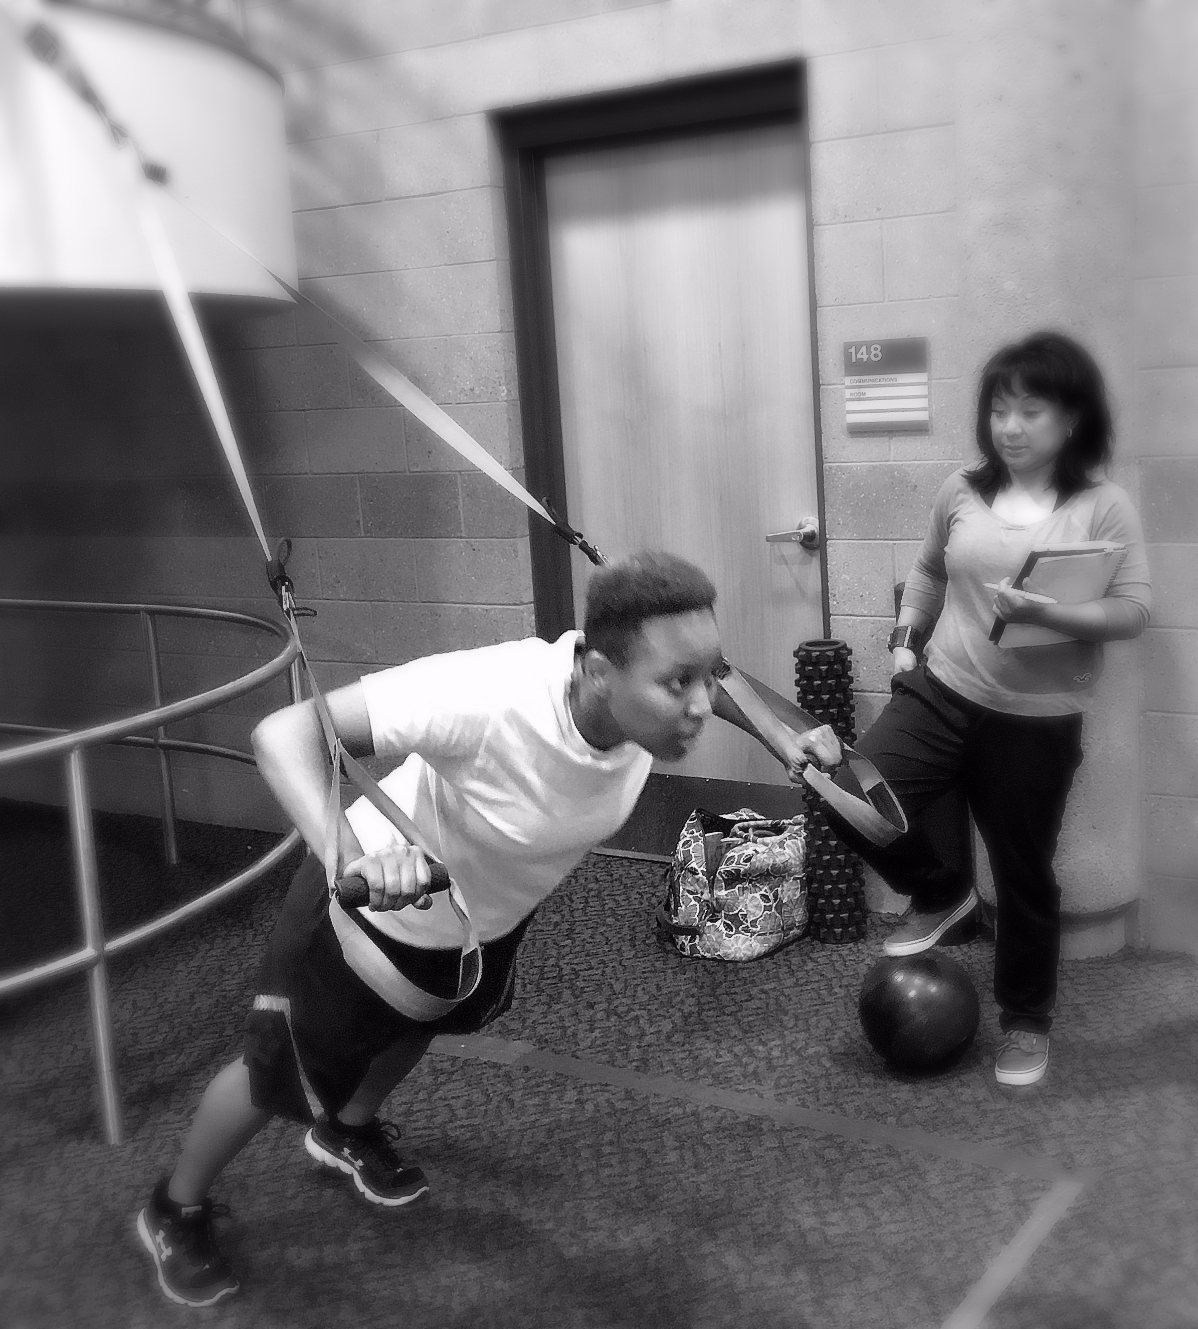 Train to excel physical fit test.